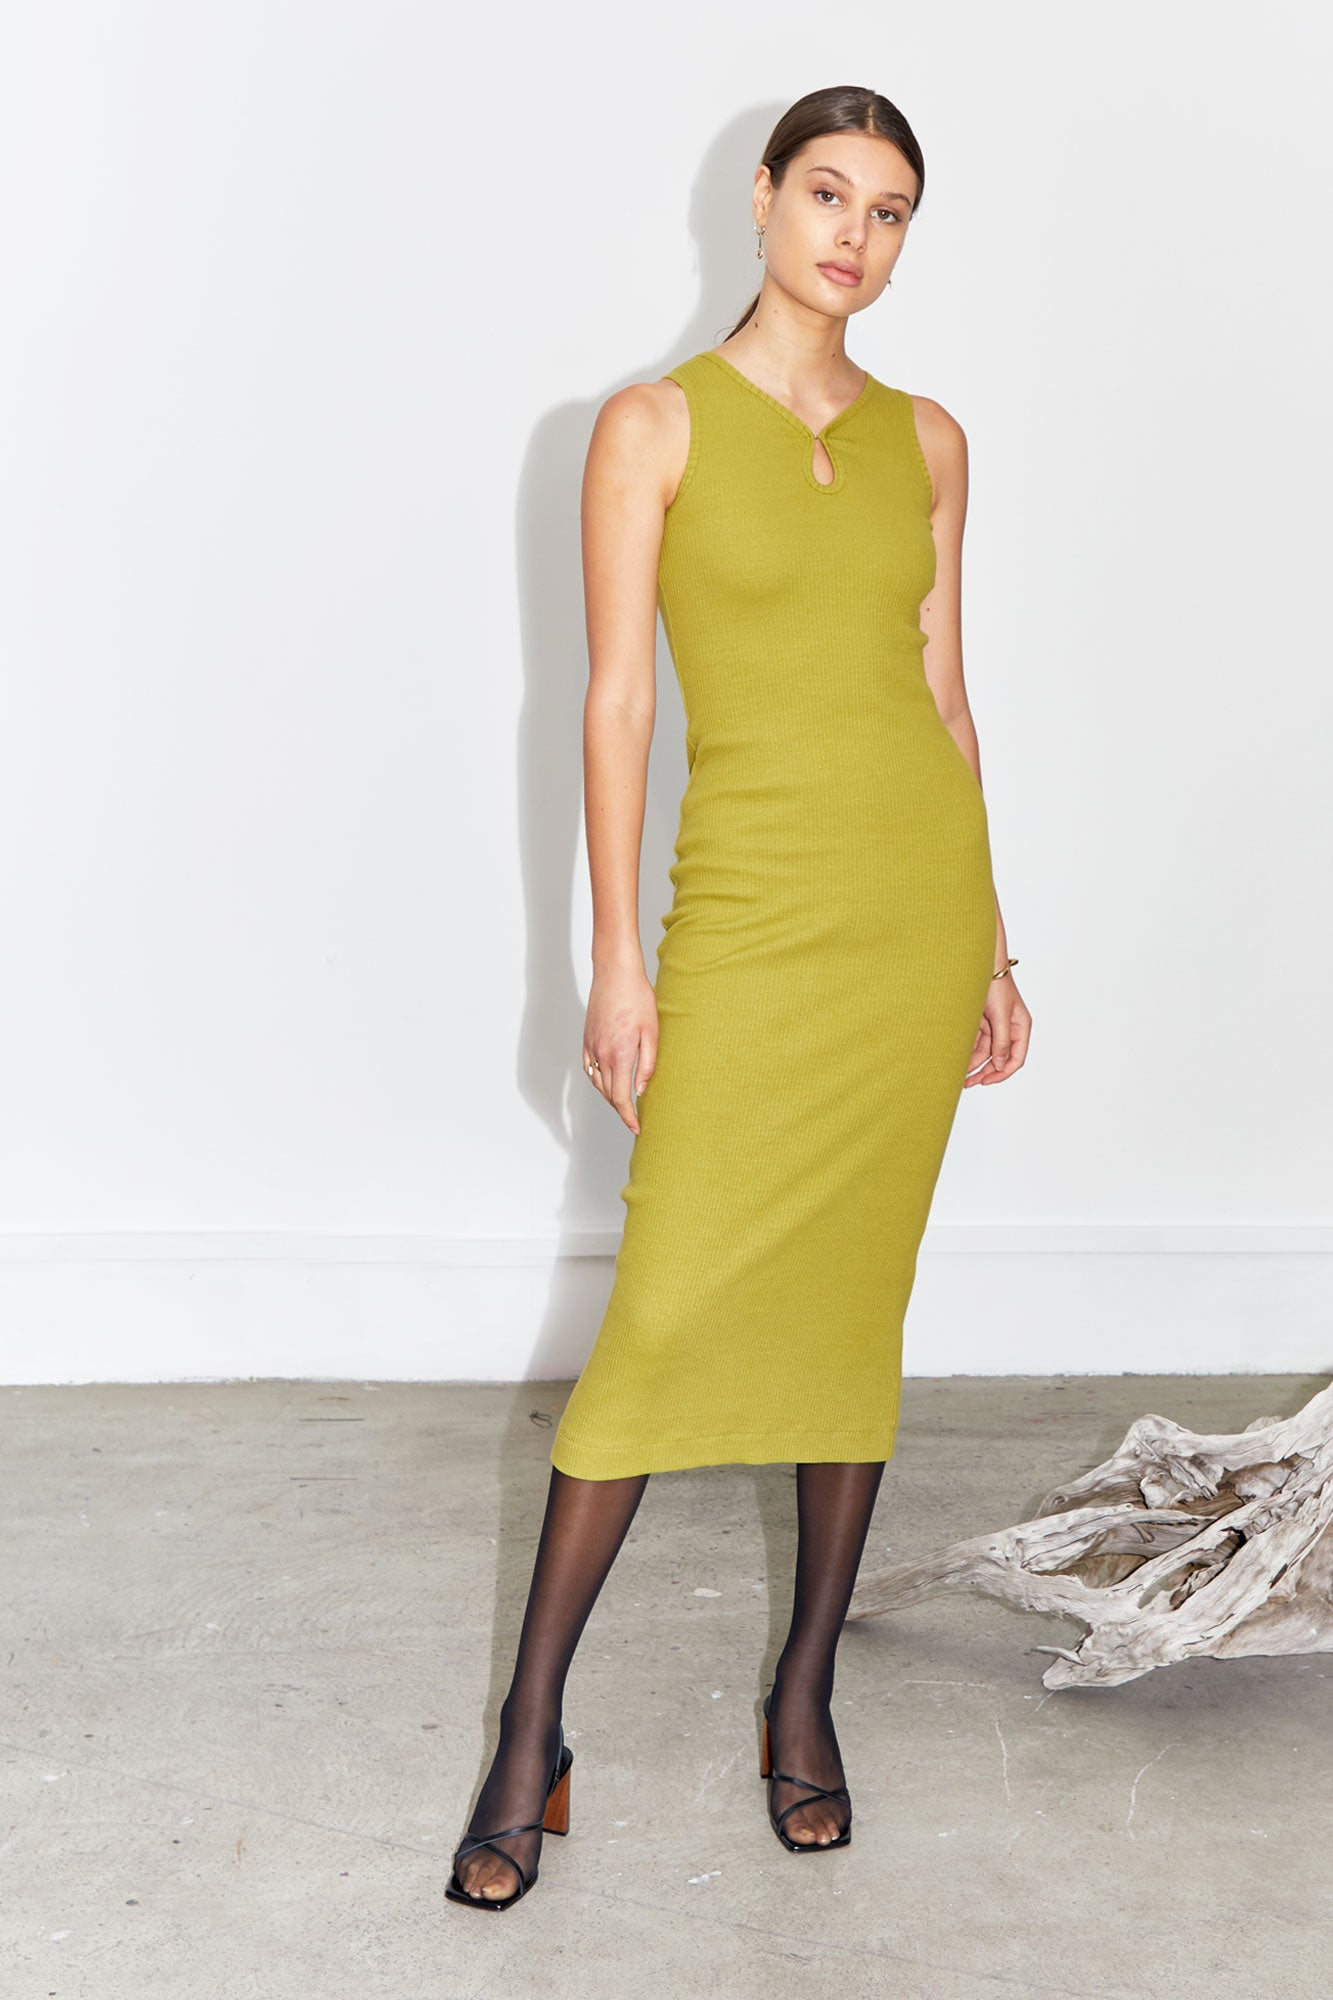 Ribbed Knit Key Hole Dress - Olive